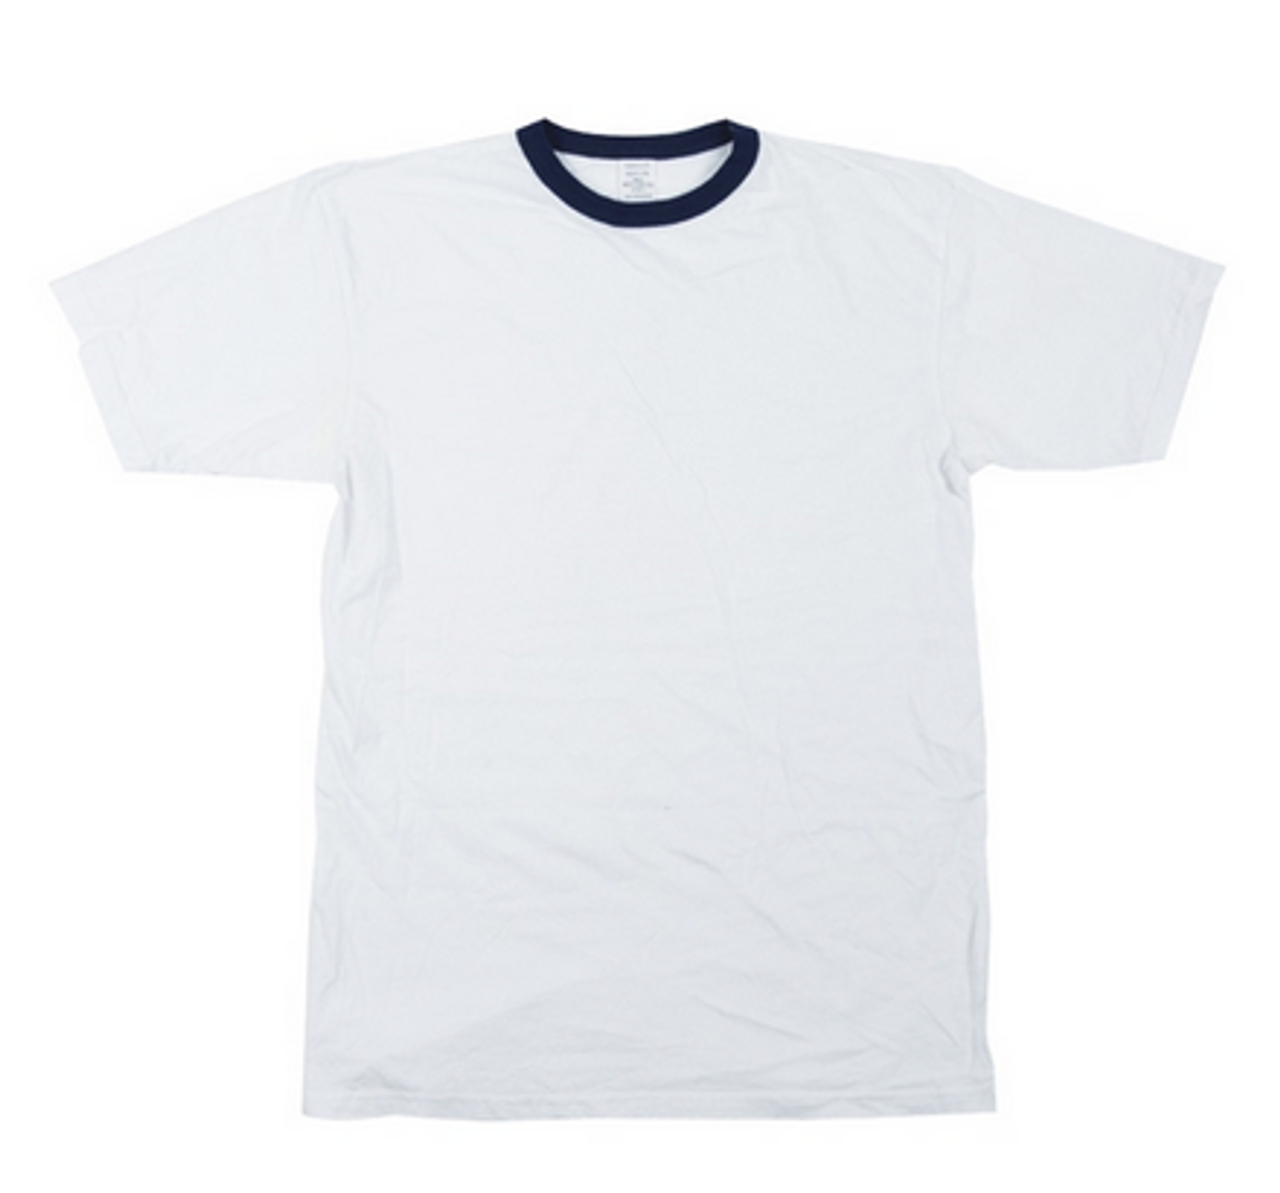 BW White T-Shirt With Blue Trim - Used from Hessen Surplus